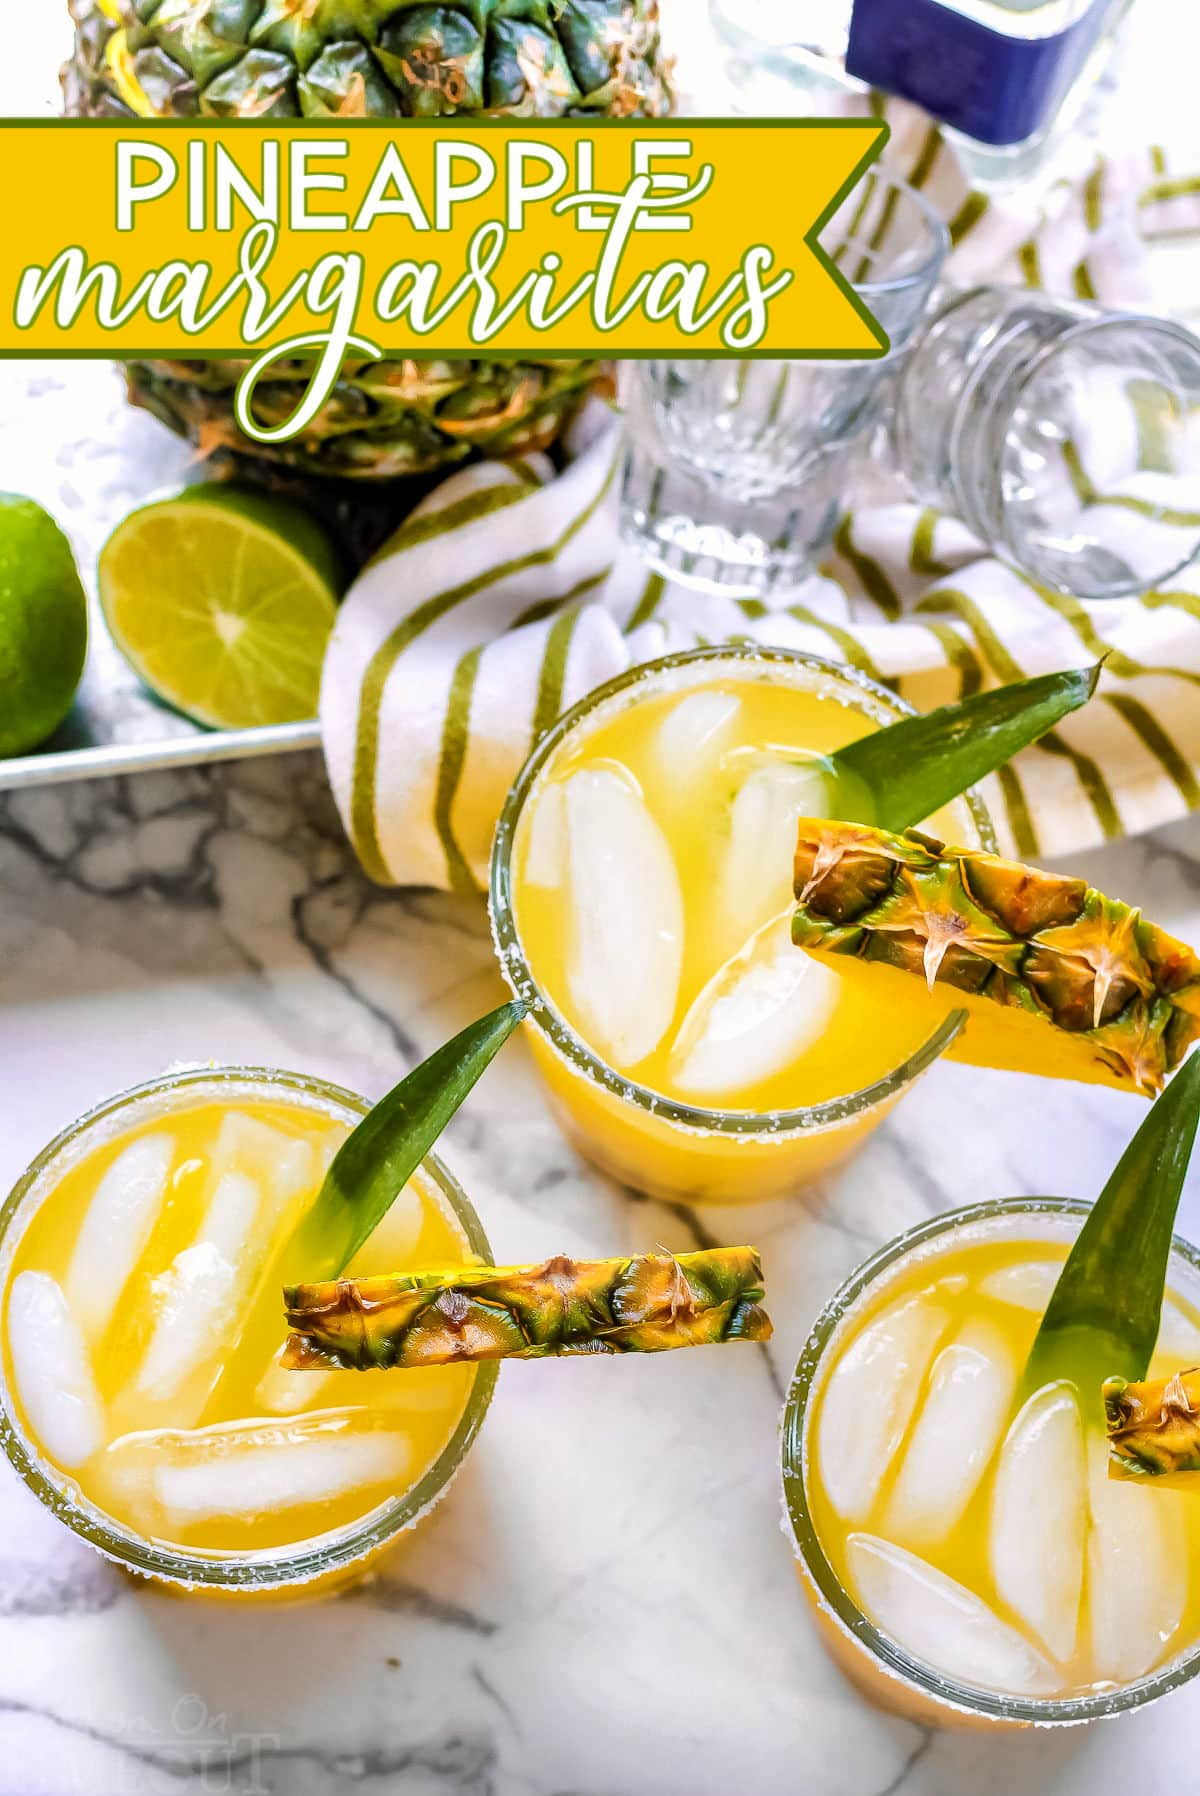 pineapple margaritas on marble cutting board with pineapple in the background and text overlay